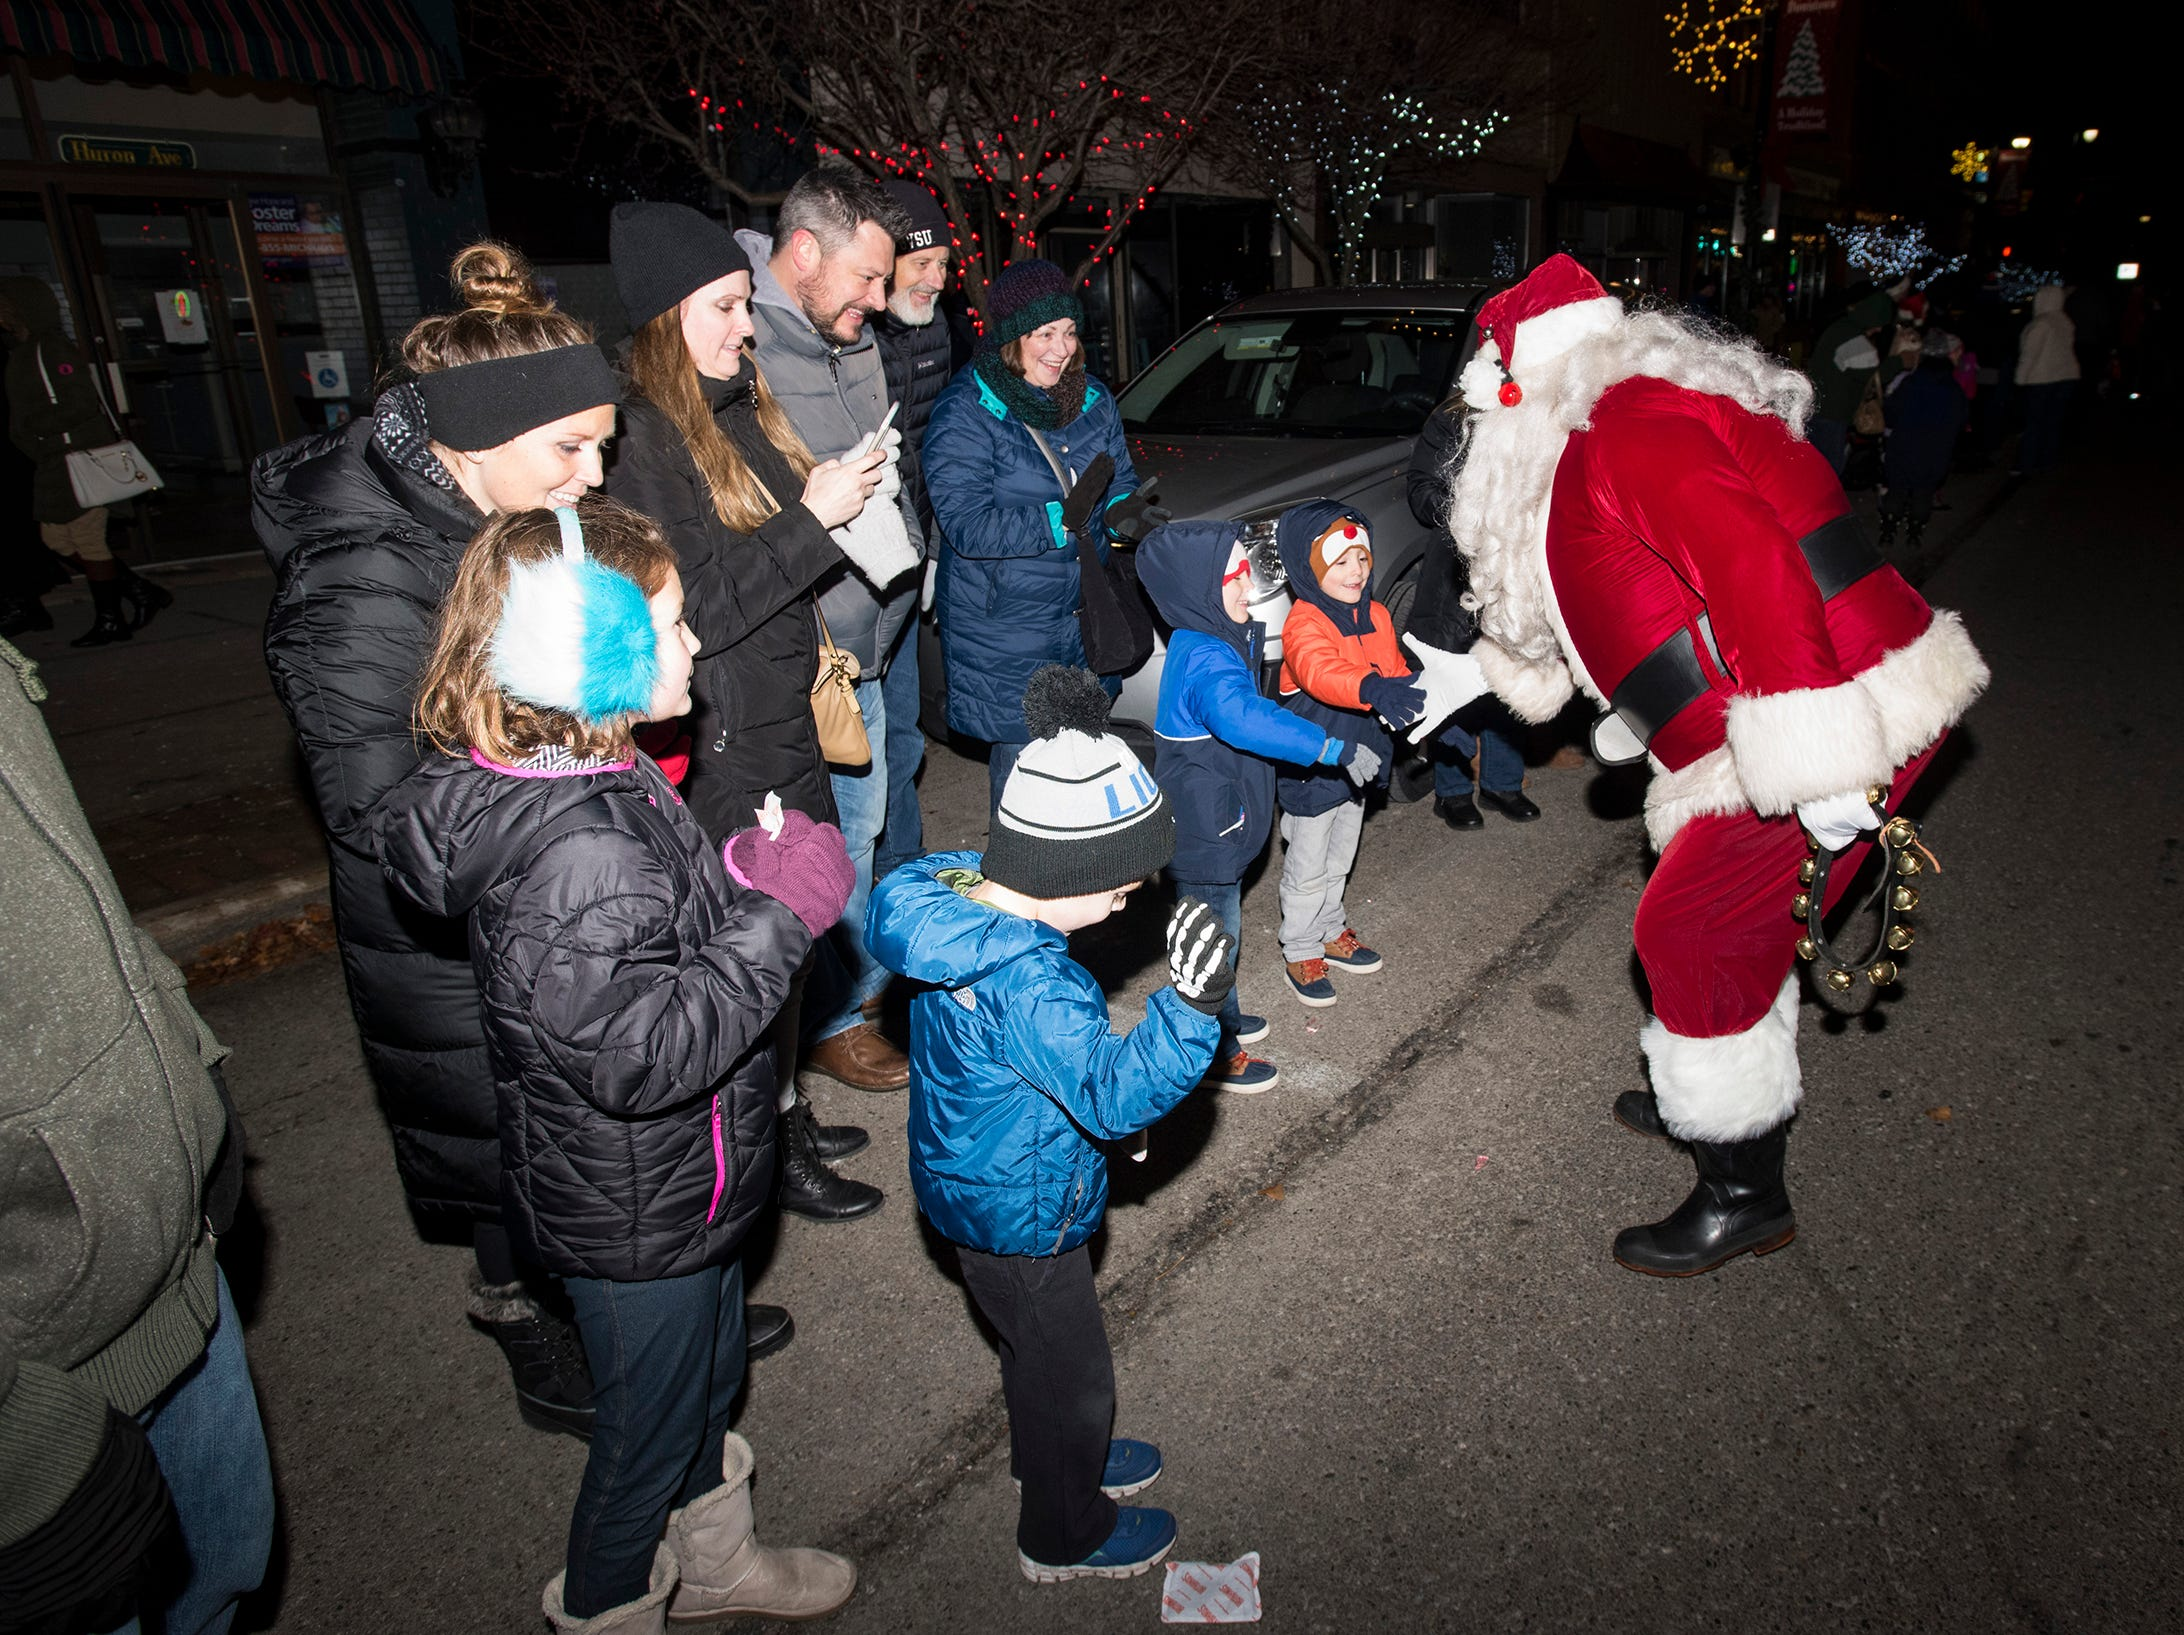 Santa Claus stops to talk to a group of kids during Sperry's Santa Claus Parade Friday, Nov. 23, 2018 in downtown Port Huron.